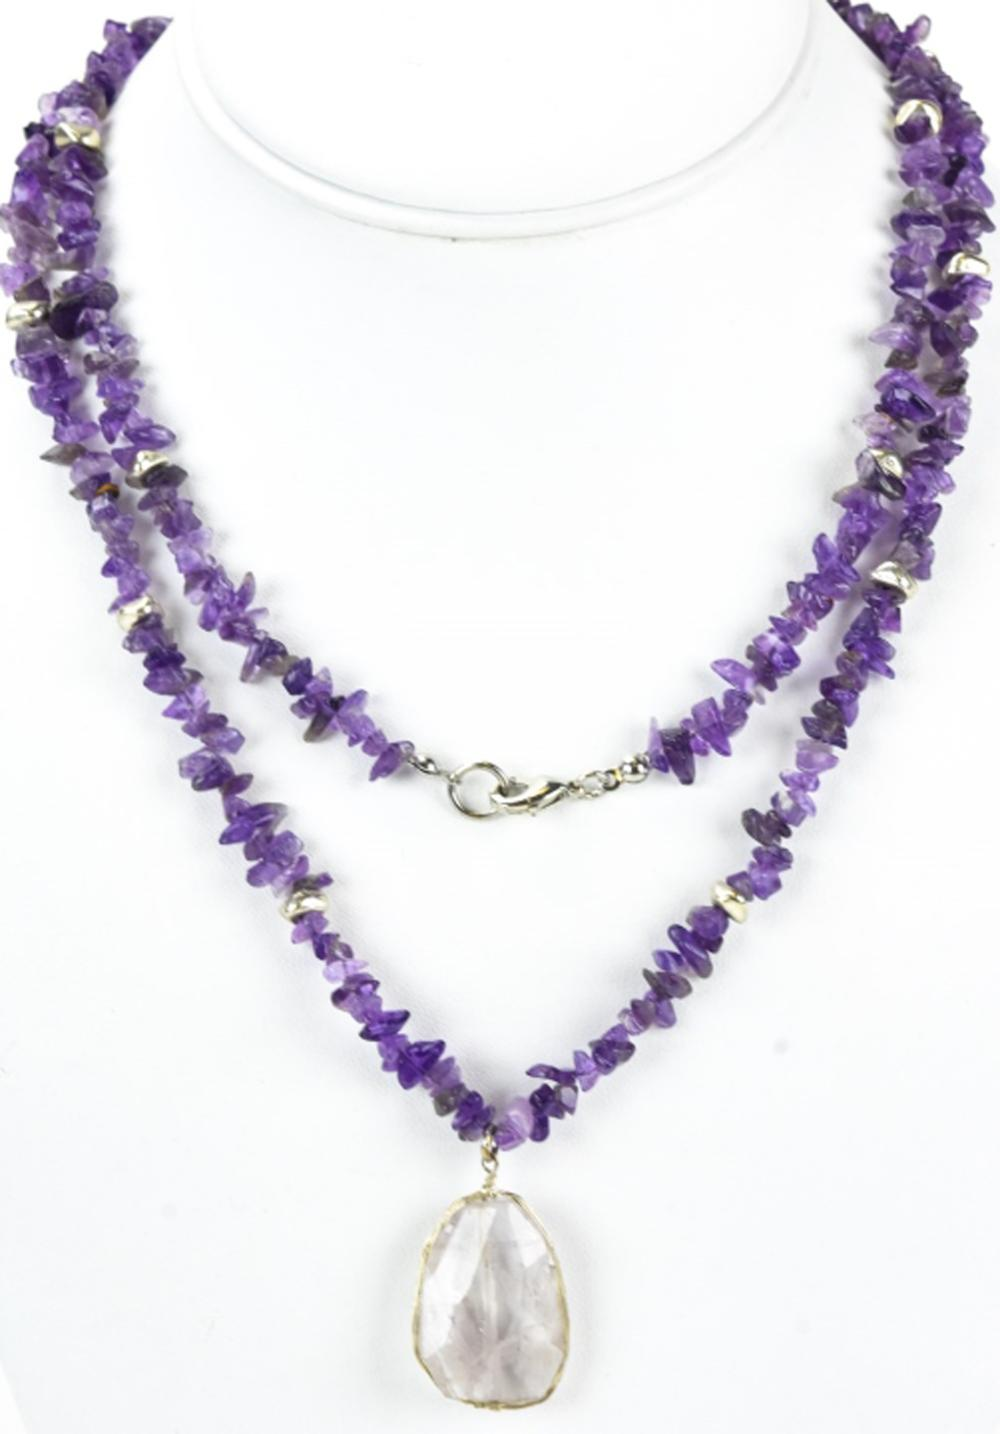 Tumbled Amethyst & Rock Crystal Beaded Necklace